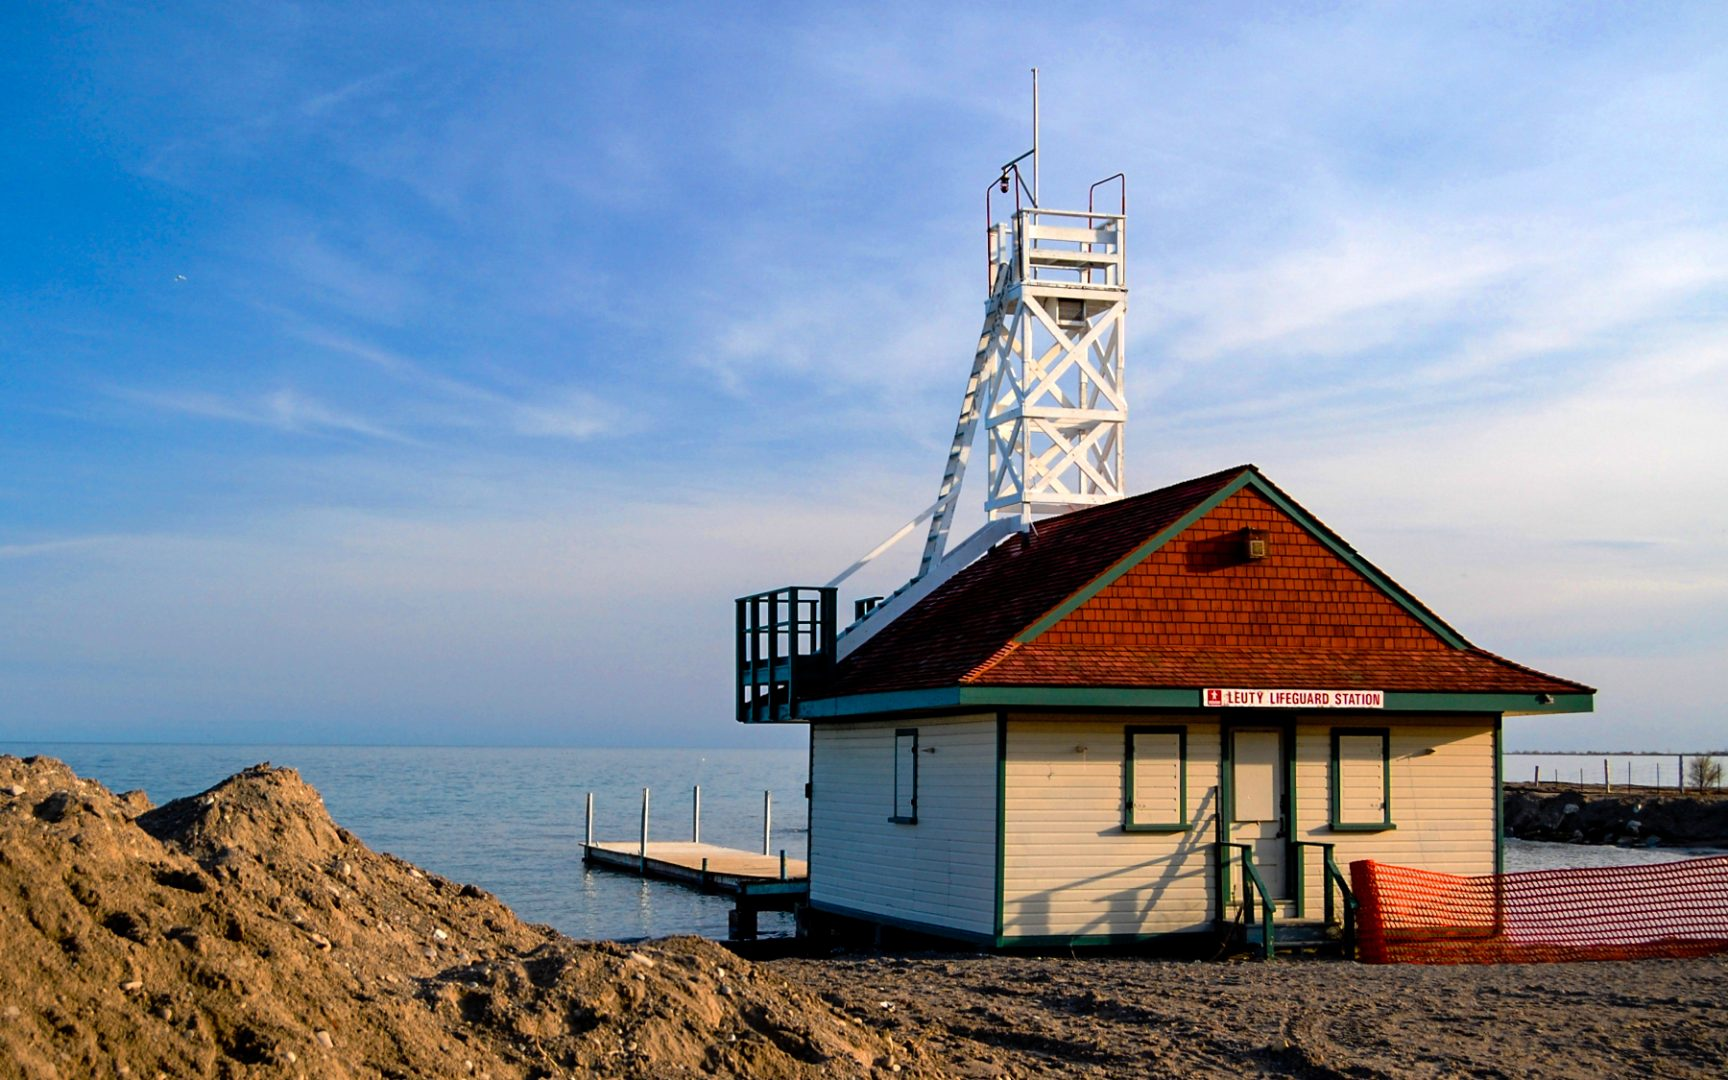 Lake Ontario and Leuty Lifeguard Station